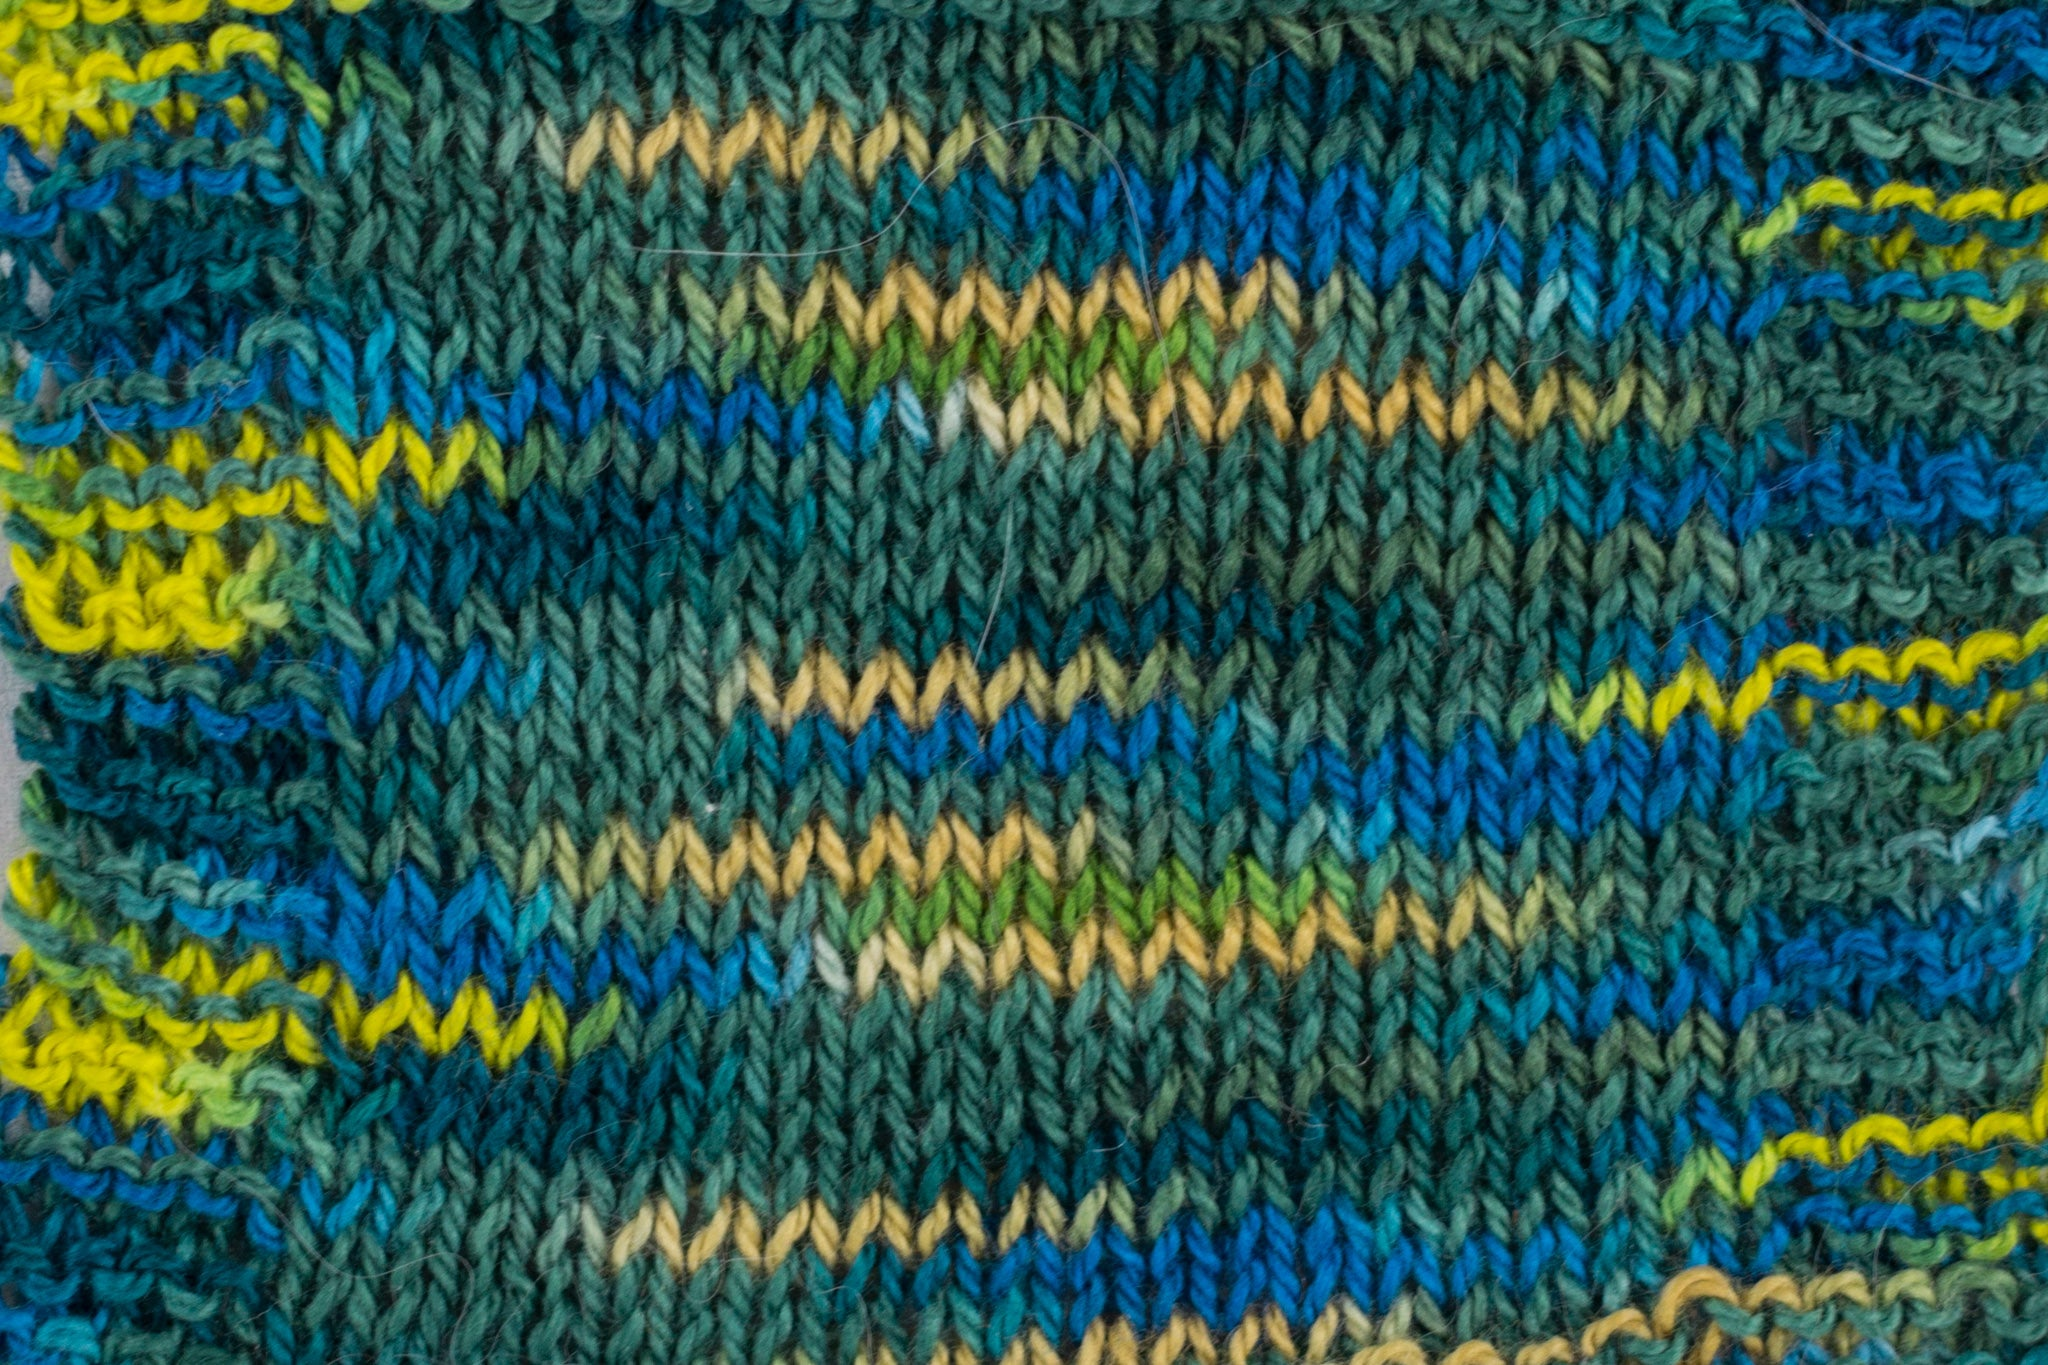 Organic & Fair Trade Cotton Yarn- Blue, green, and yellow swatch